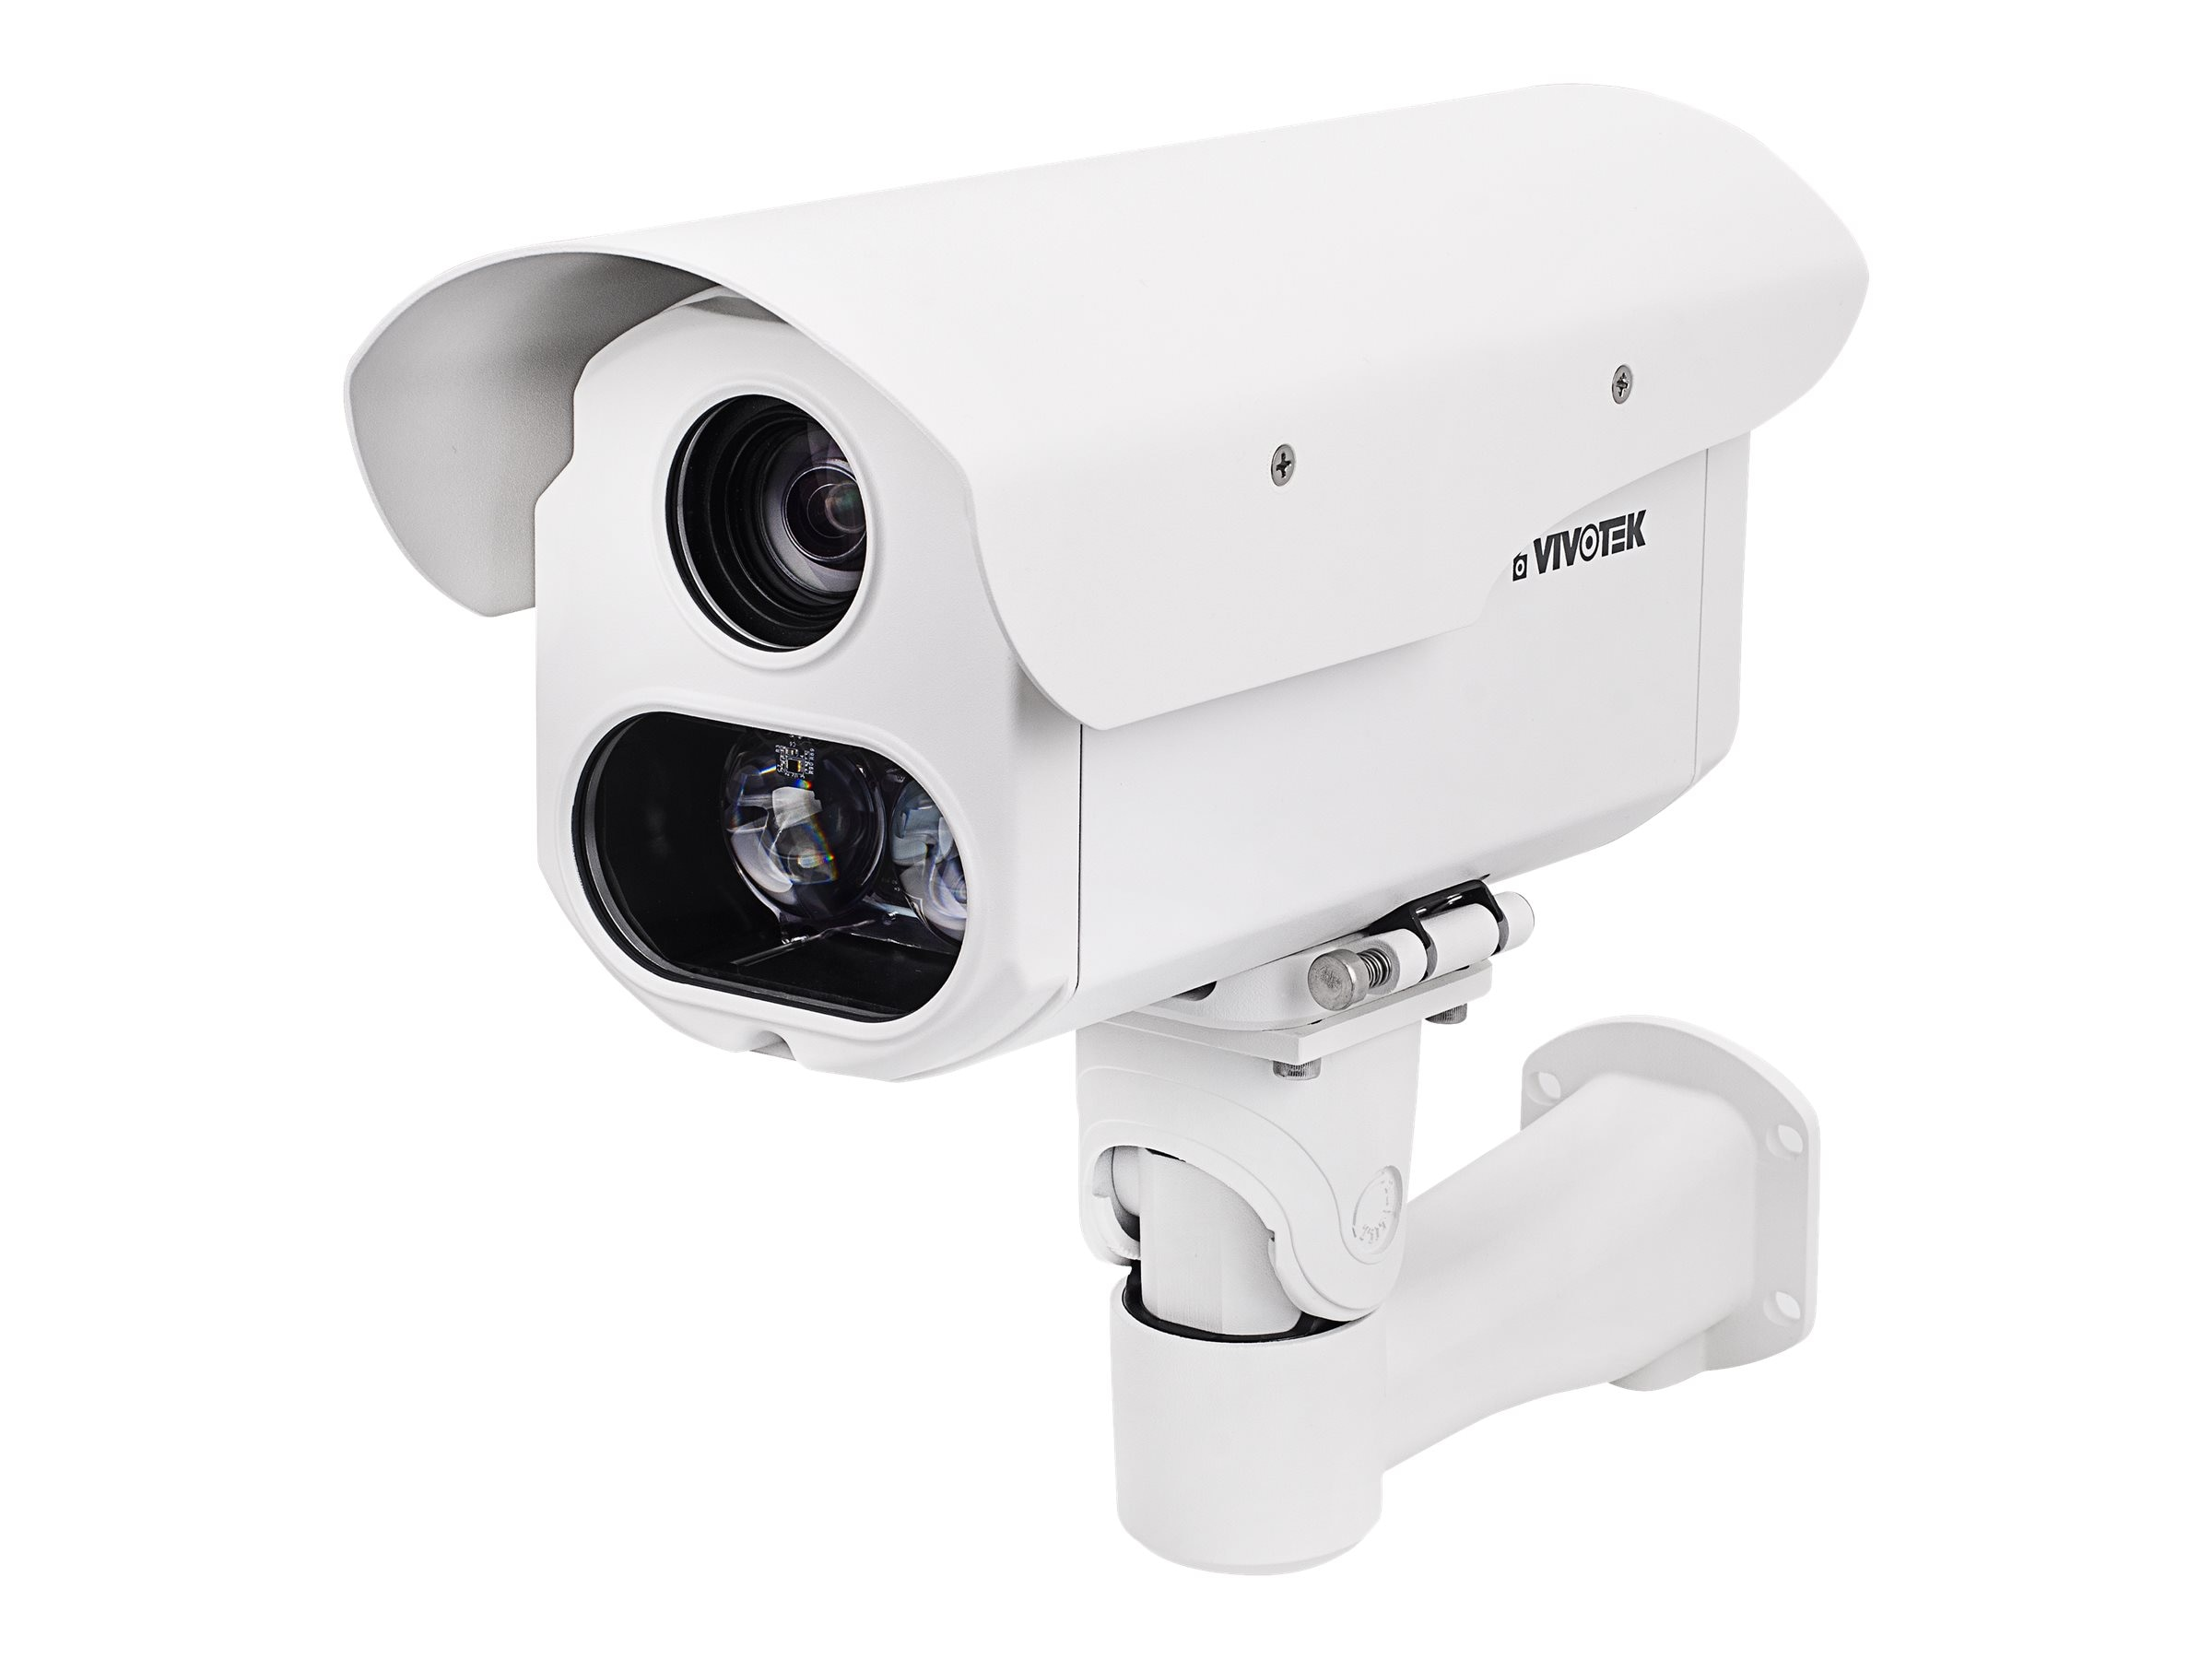 Vivotek 2MP WDR Pro Outdoor Bullet Camera with 4.7-94mm Lens